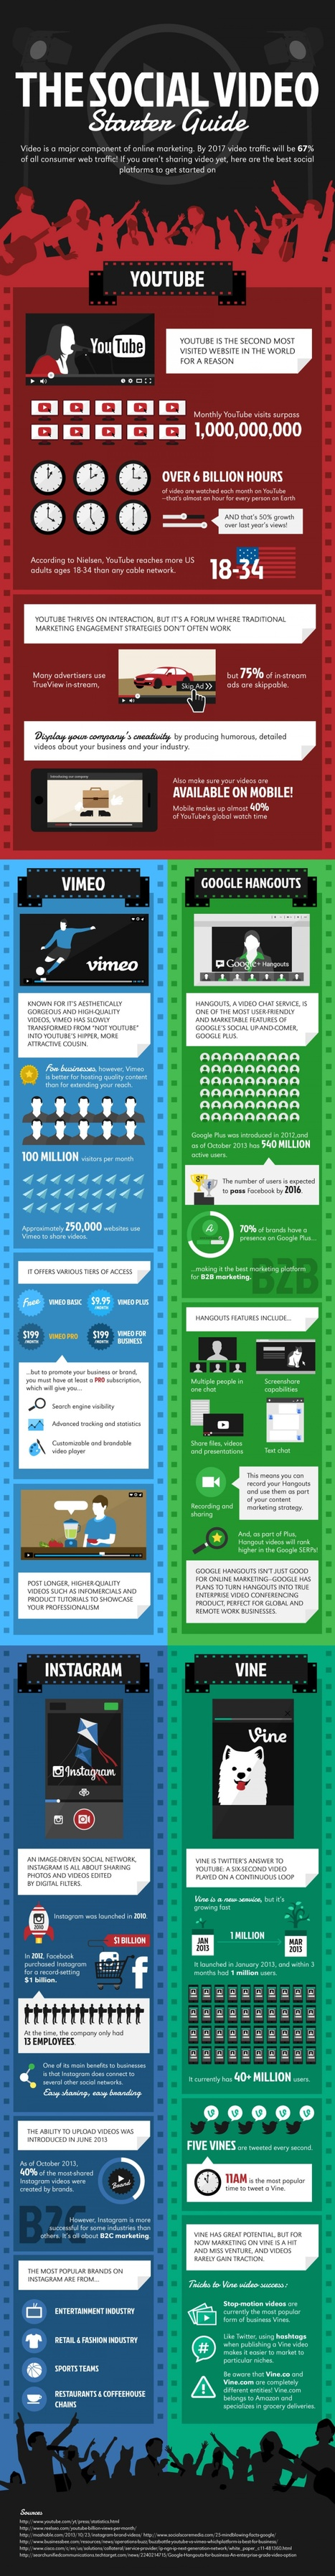 How to Choose the Right Video Platform for Your Business (Infographic) | Social Media Tutors | Scoop.it